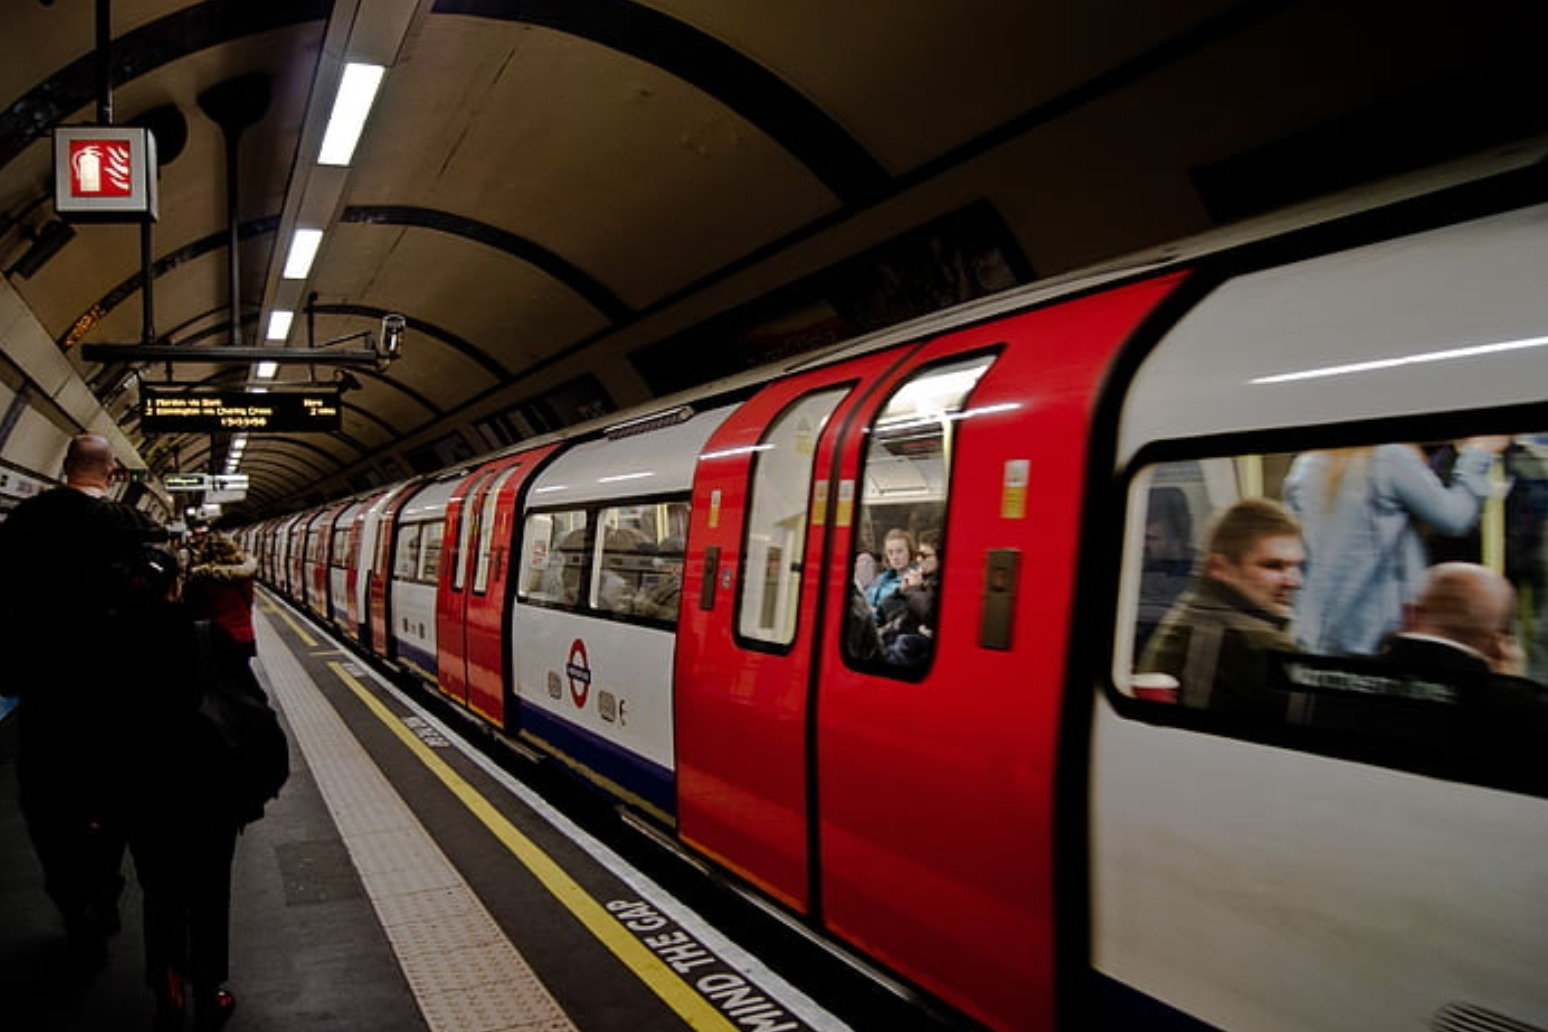 Tube workers to strike on polling day